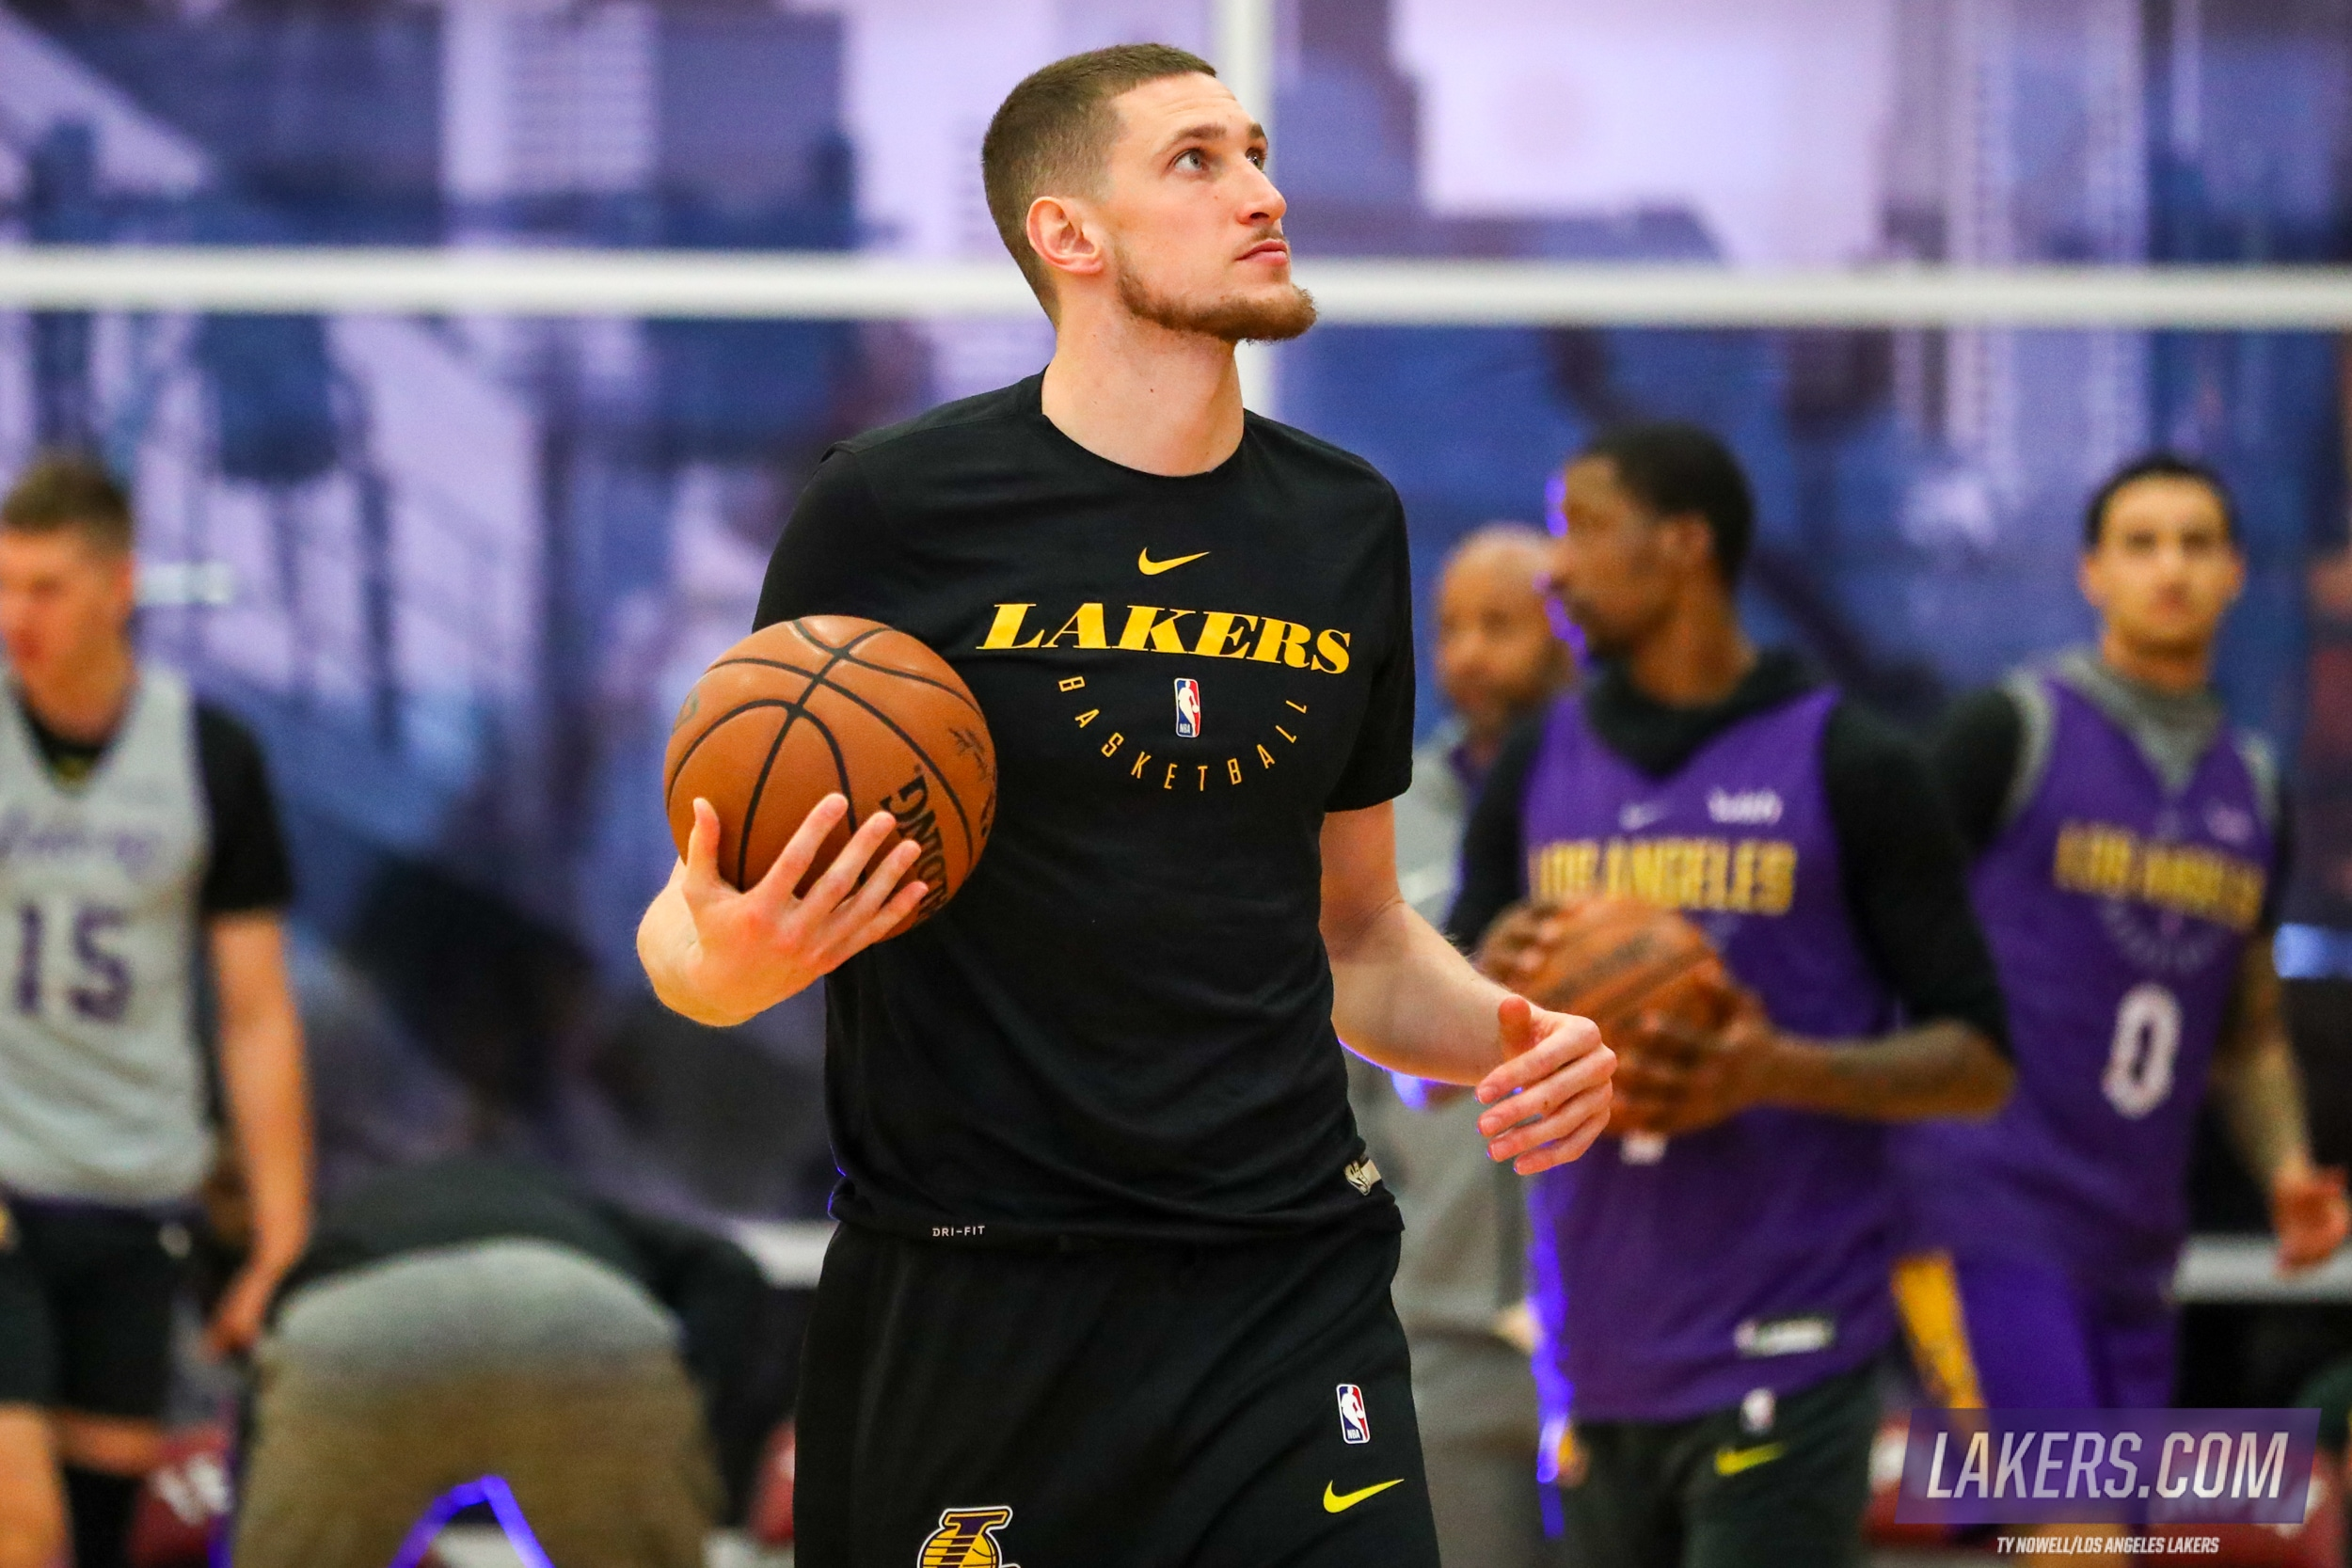 eca885888d0 New Lakers Bullock and Muscala Set to Debut in Philly